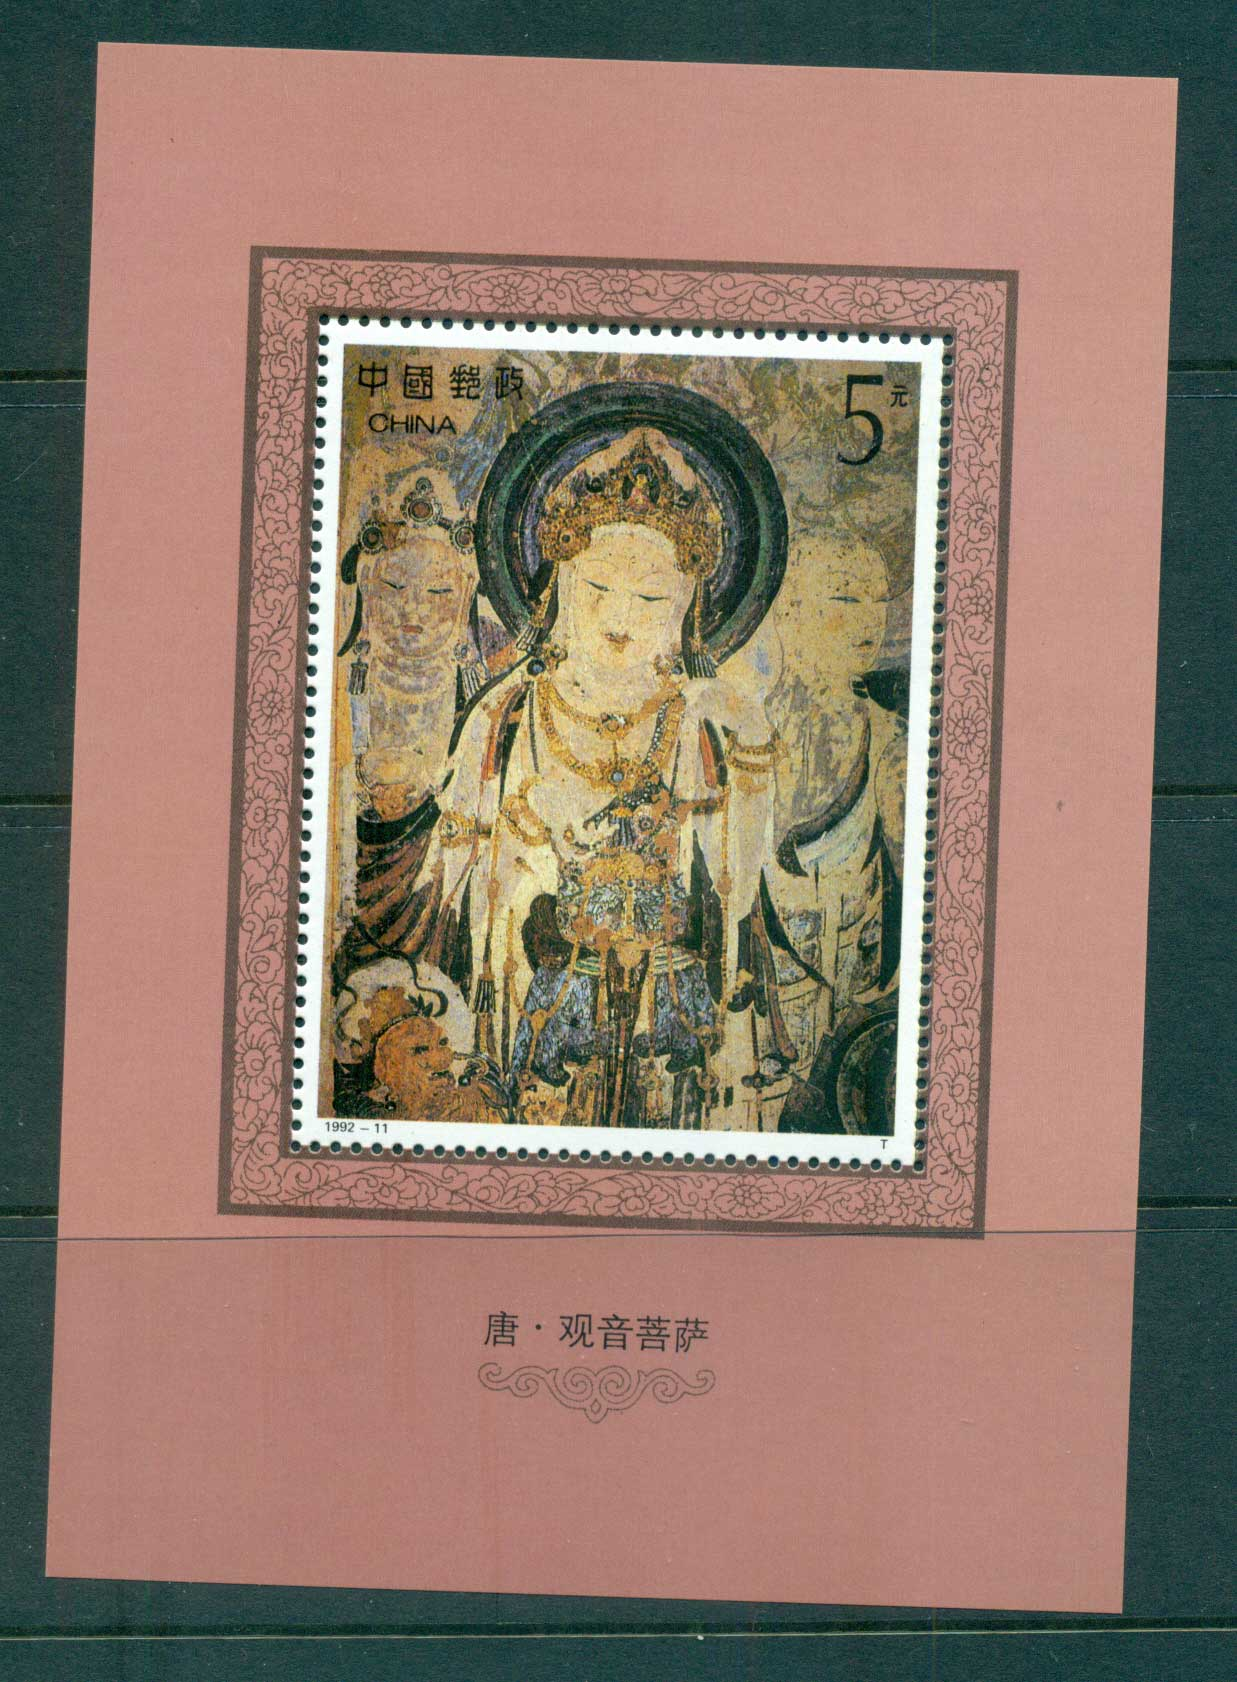 China PRC 1992 Wall paintings MS MUH lot56959